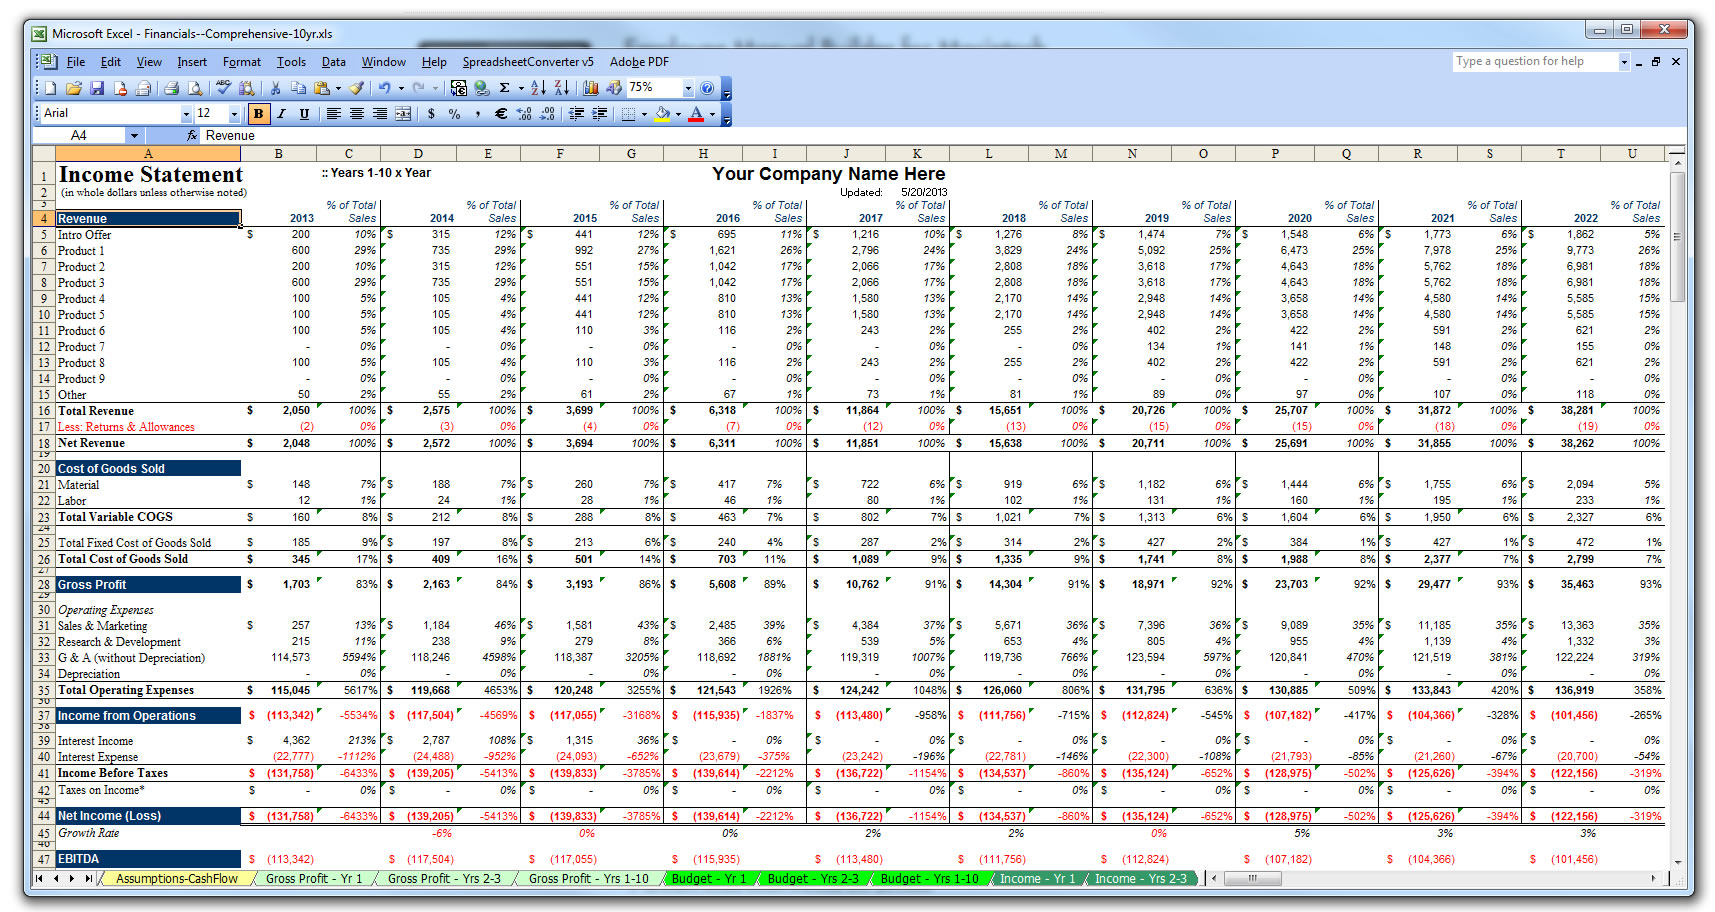 Year Business Plan Financial Budget Projection Model In Excel - Business plan financial template